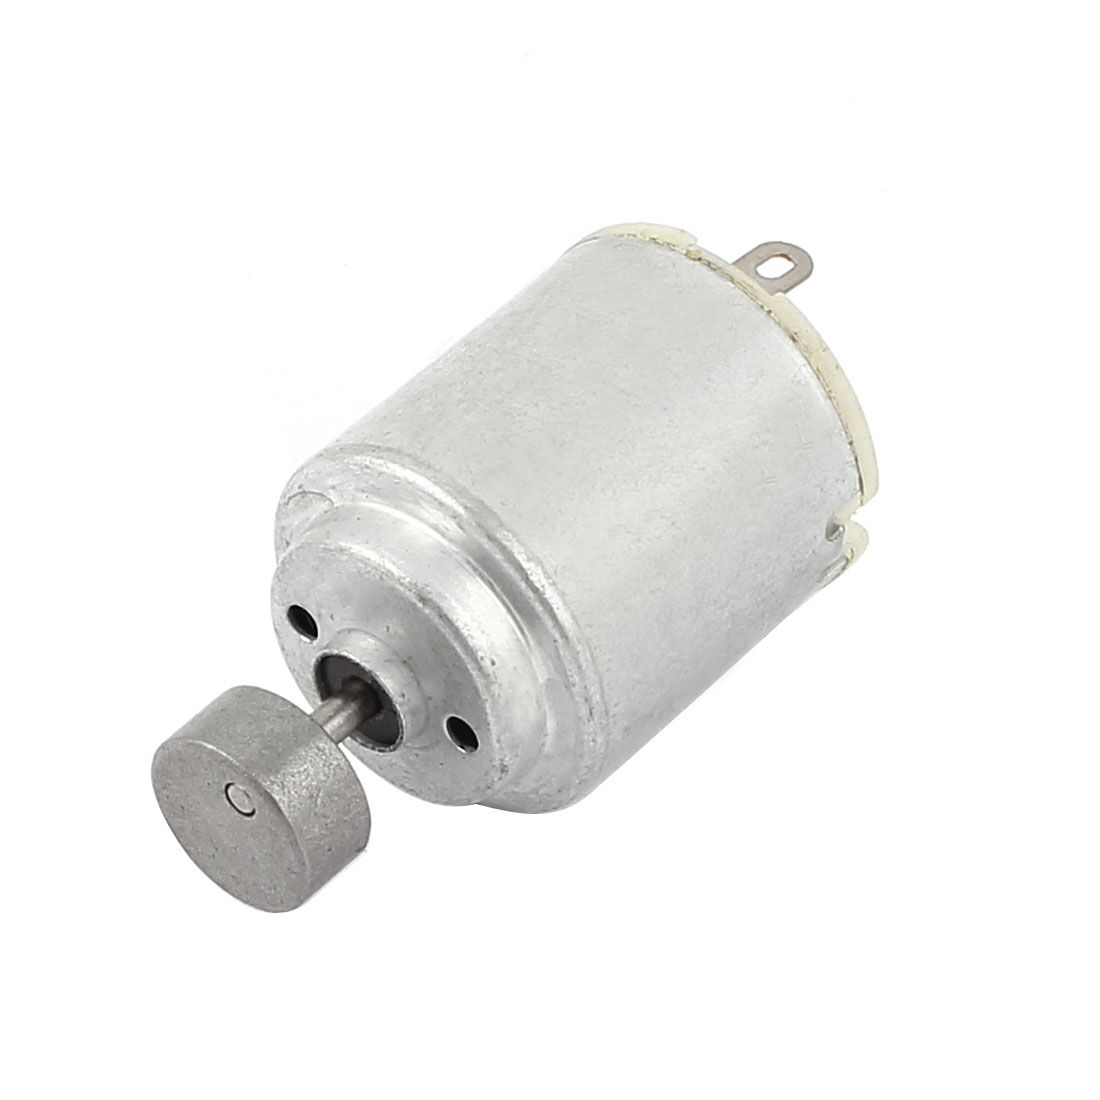 DC 3-6V 16500RPM Micro Vibration Motor Repair Parts for Massager Model